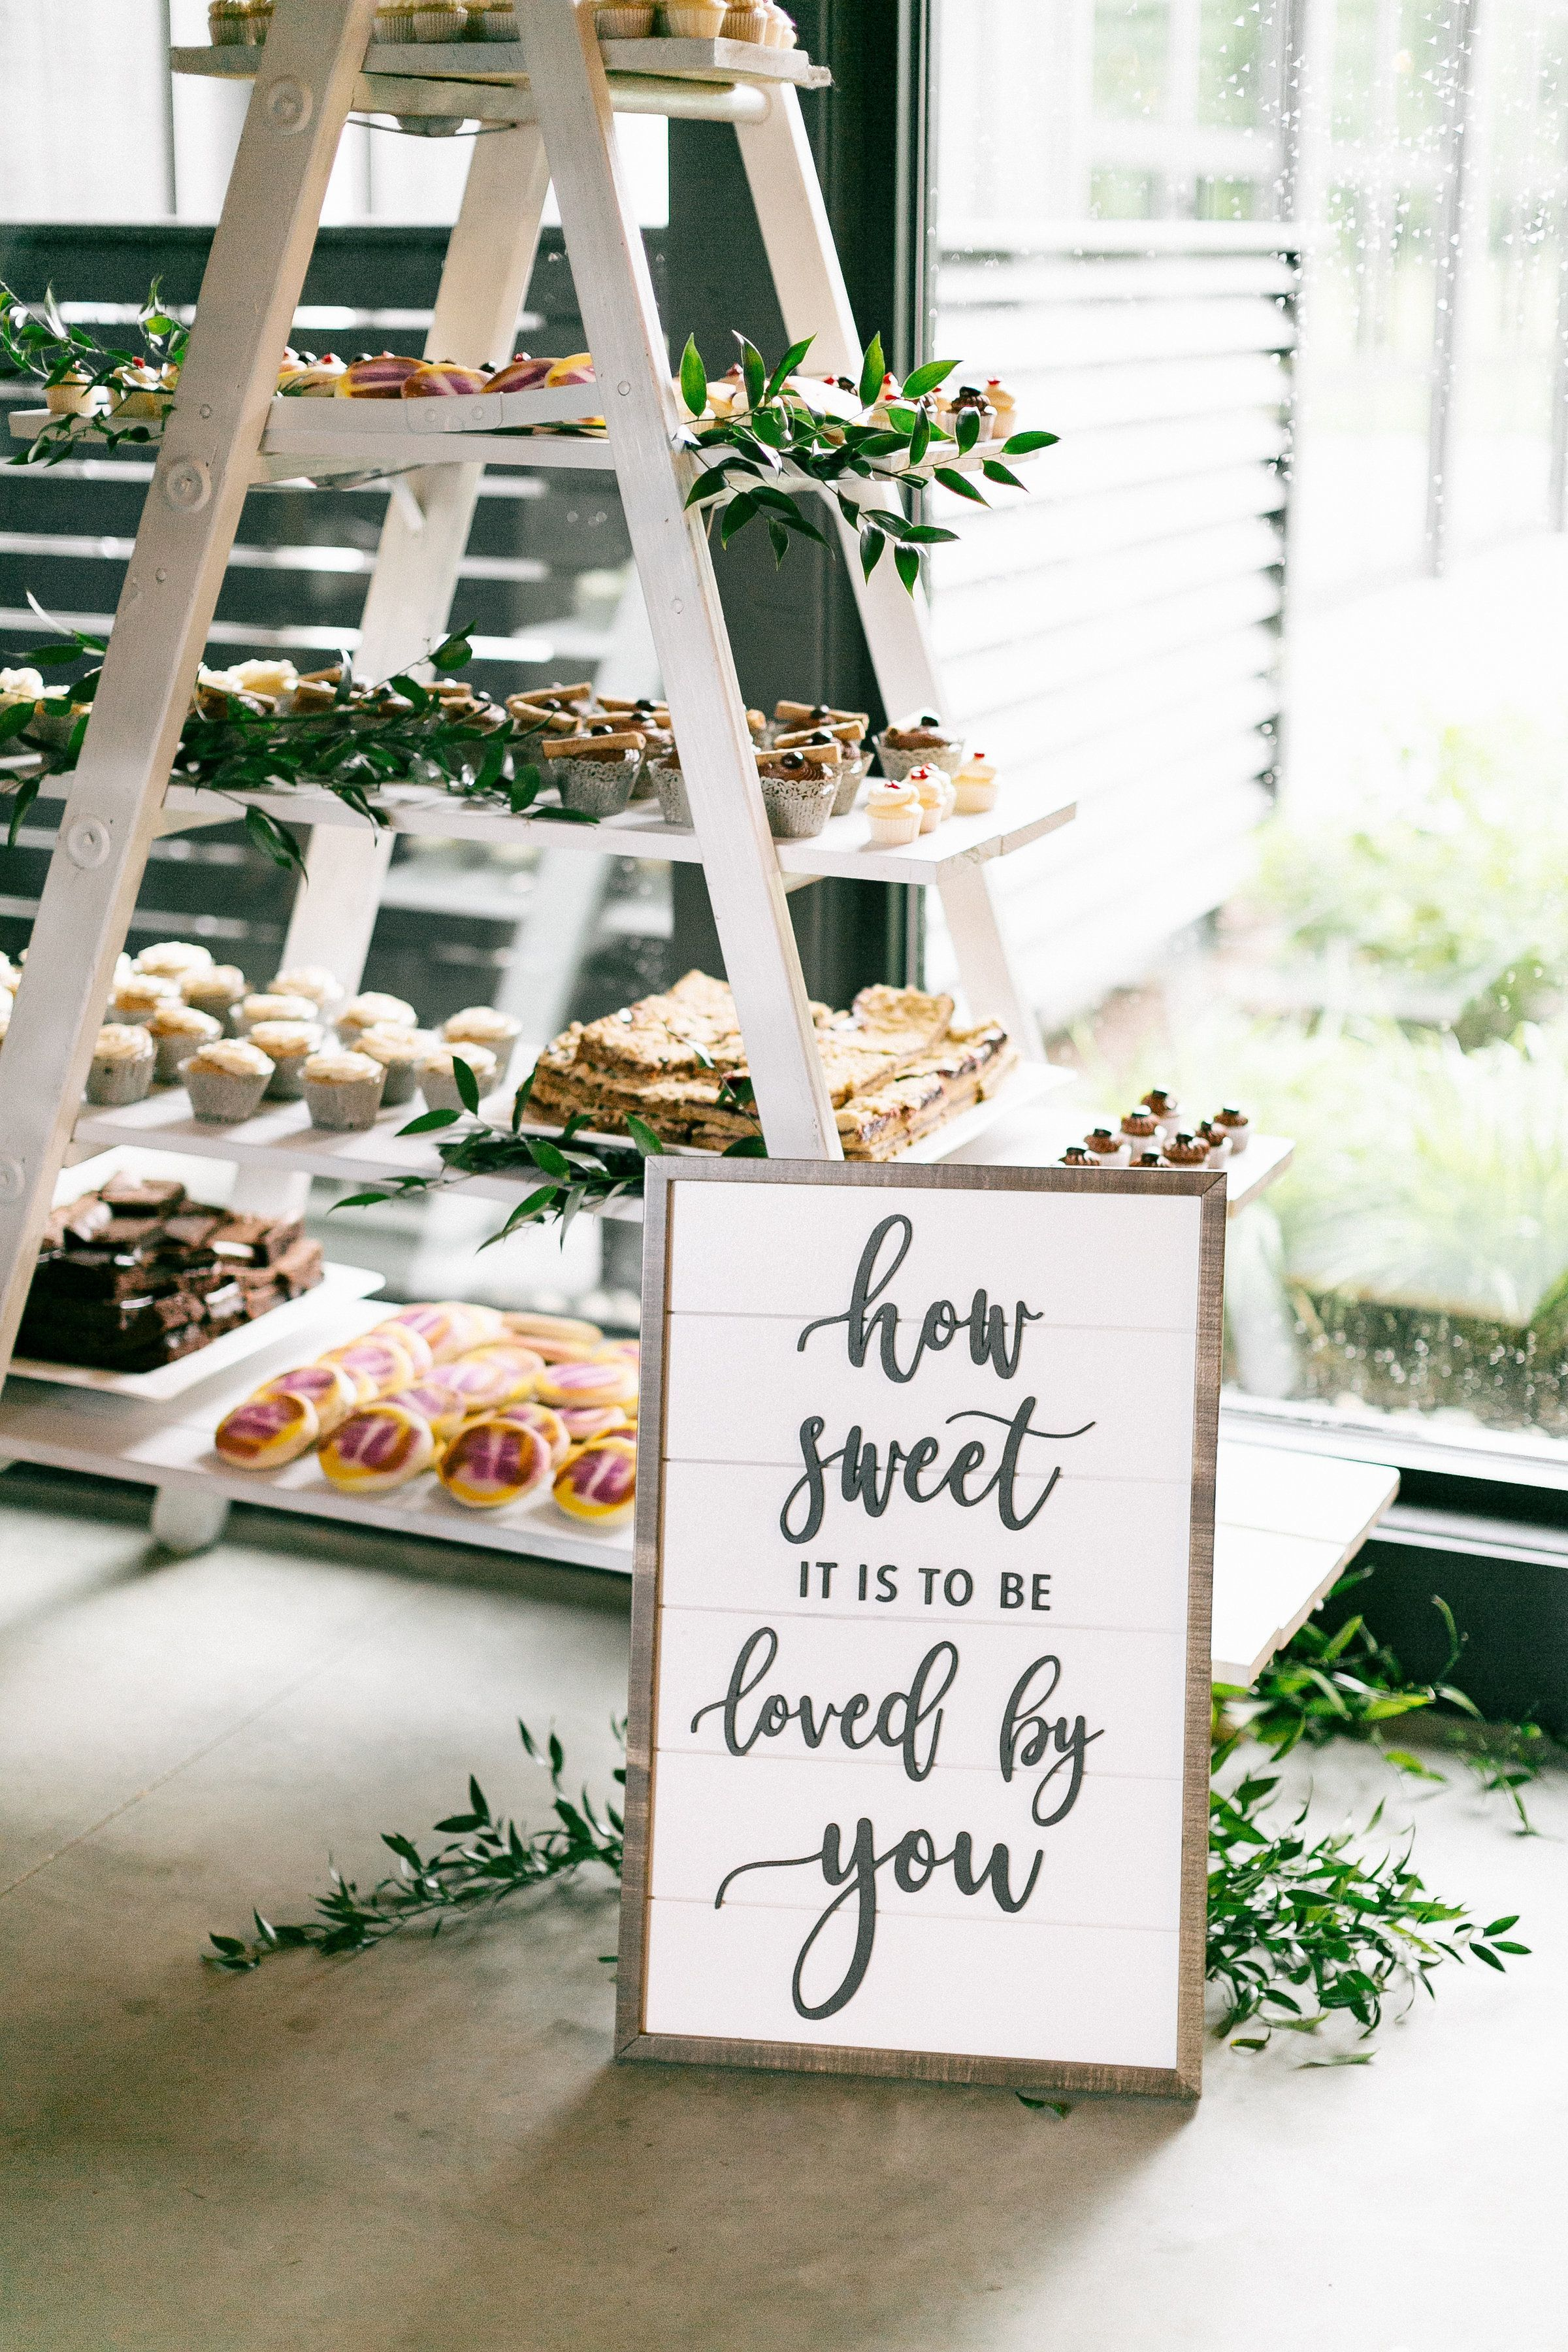 Such a perfect way to showcase some yummy desserts for your guest! Instead of a …